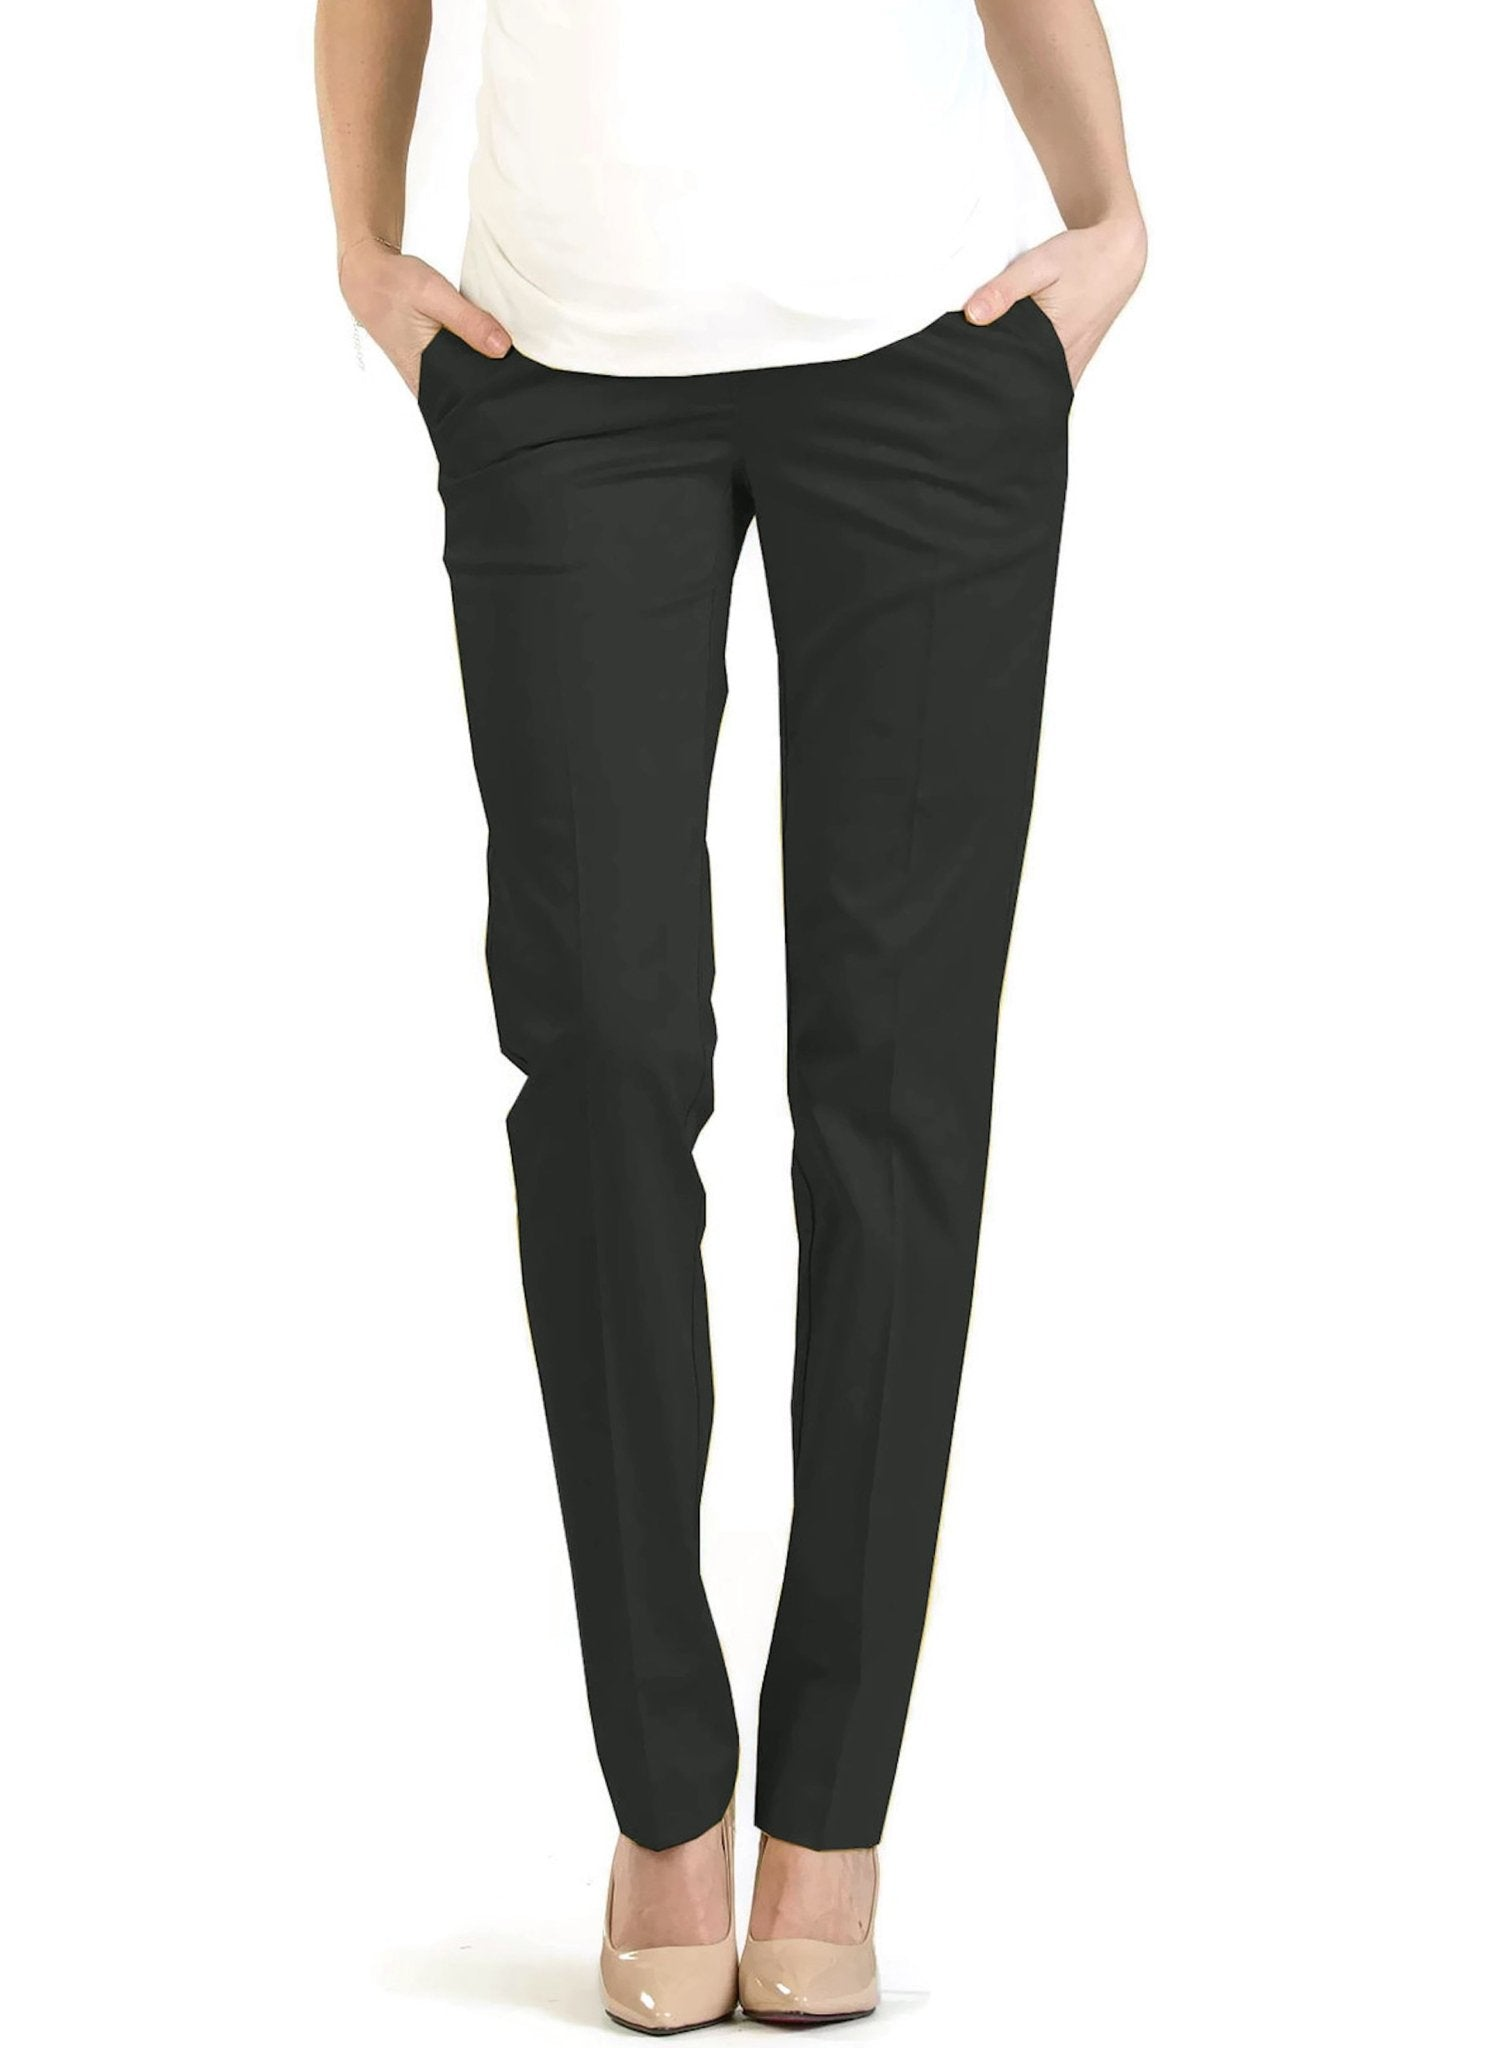 Straight Leg Maternity Trouser - Black - Mums and Bumps